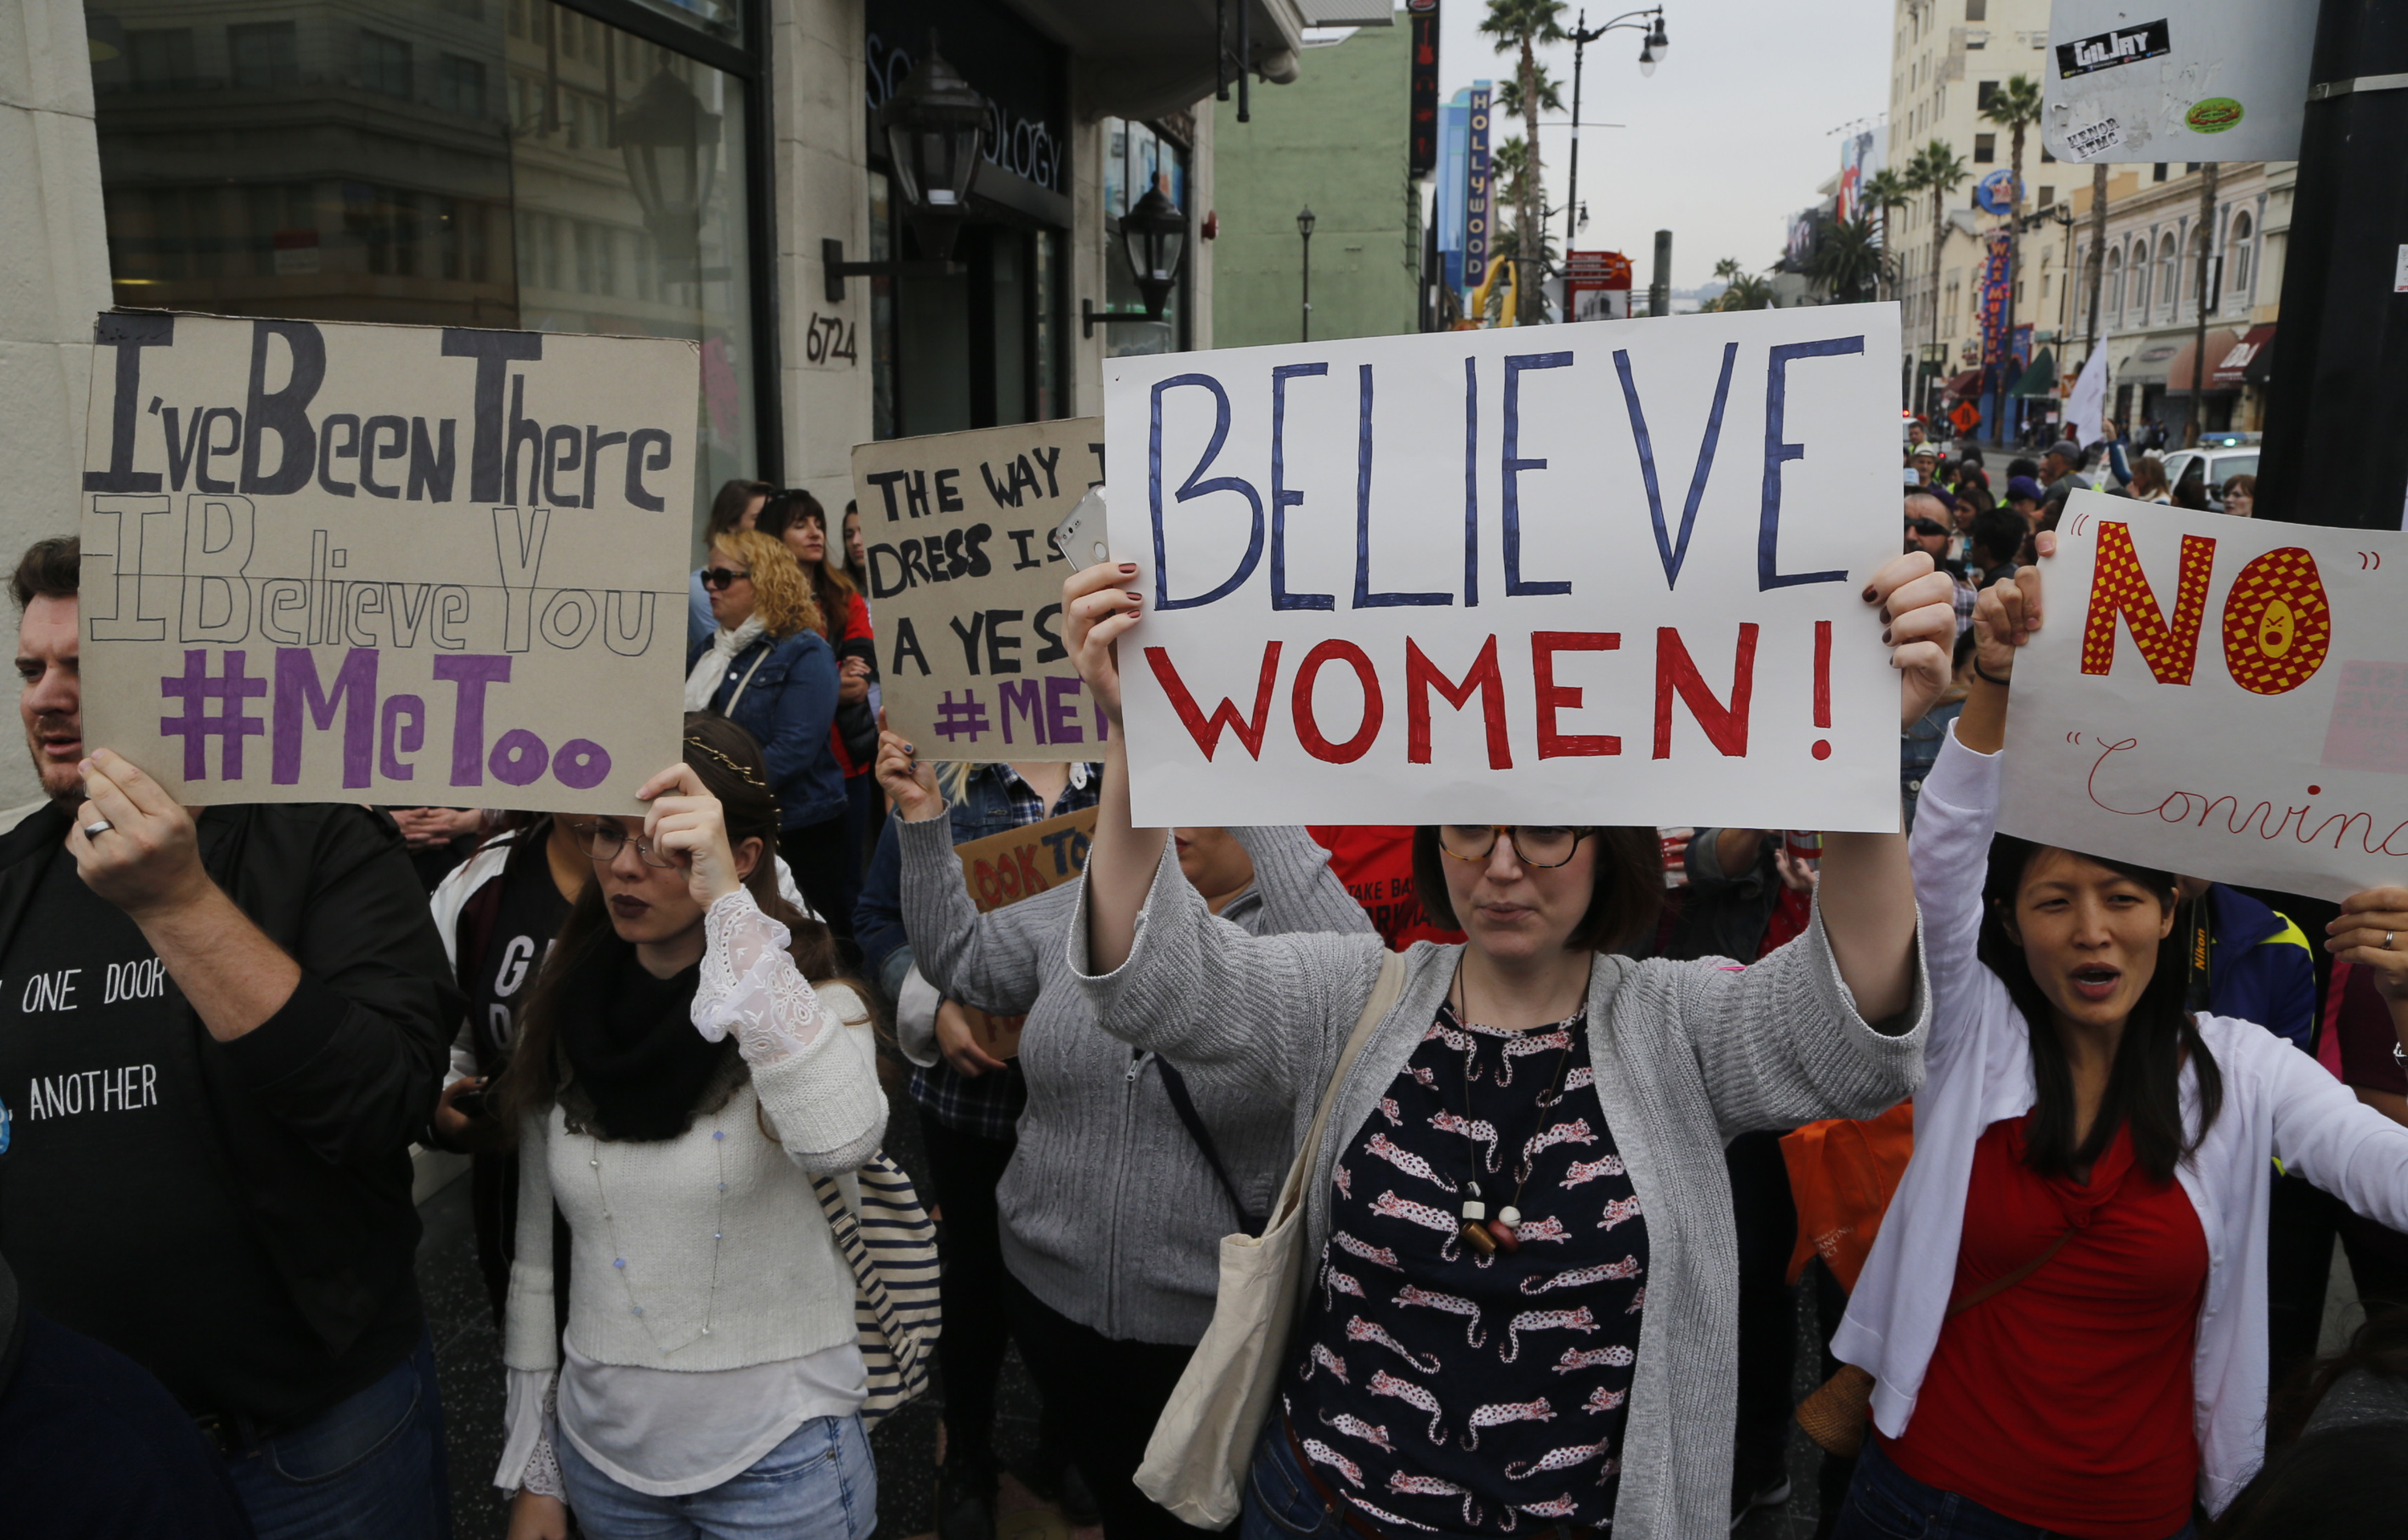 Participants march against sexual assault and harassment at the #MeToo March in the Hollywood section of Los Angeles on Sunday, Nov. 12, 2017.  (AP Photo/Damian Dovarganes)